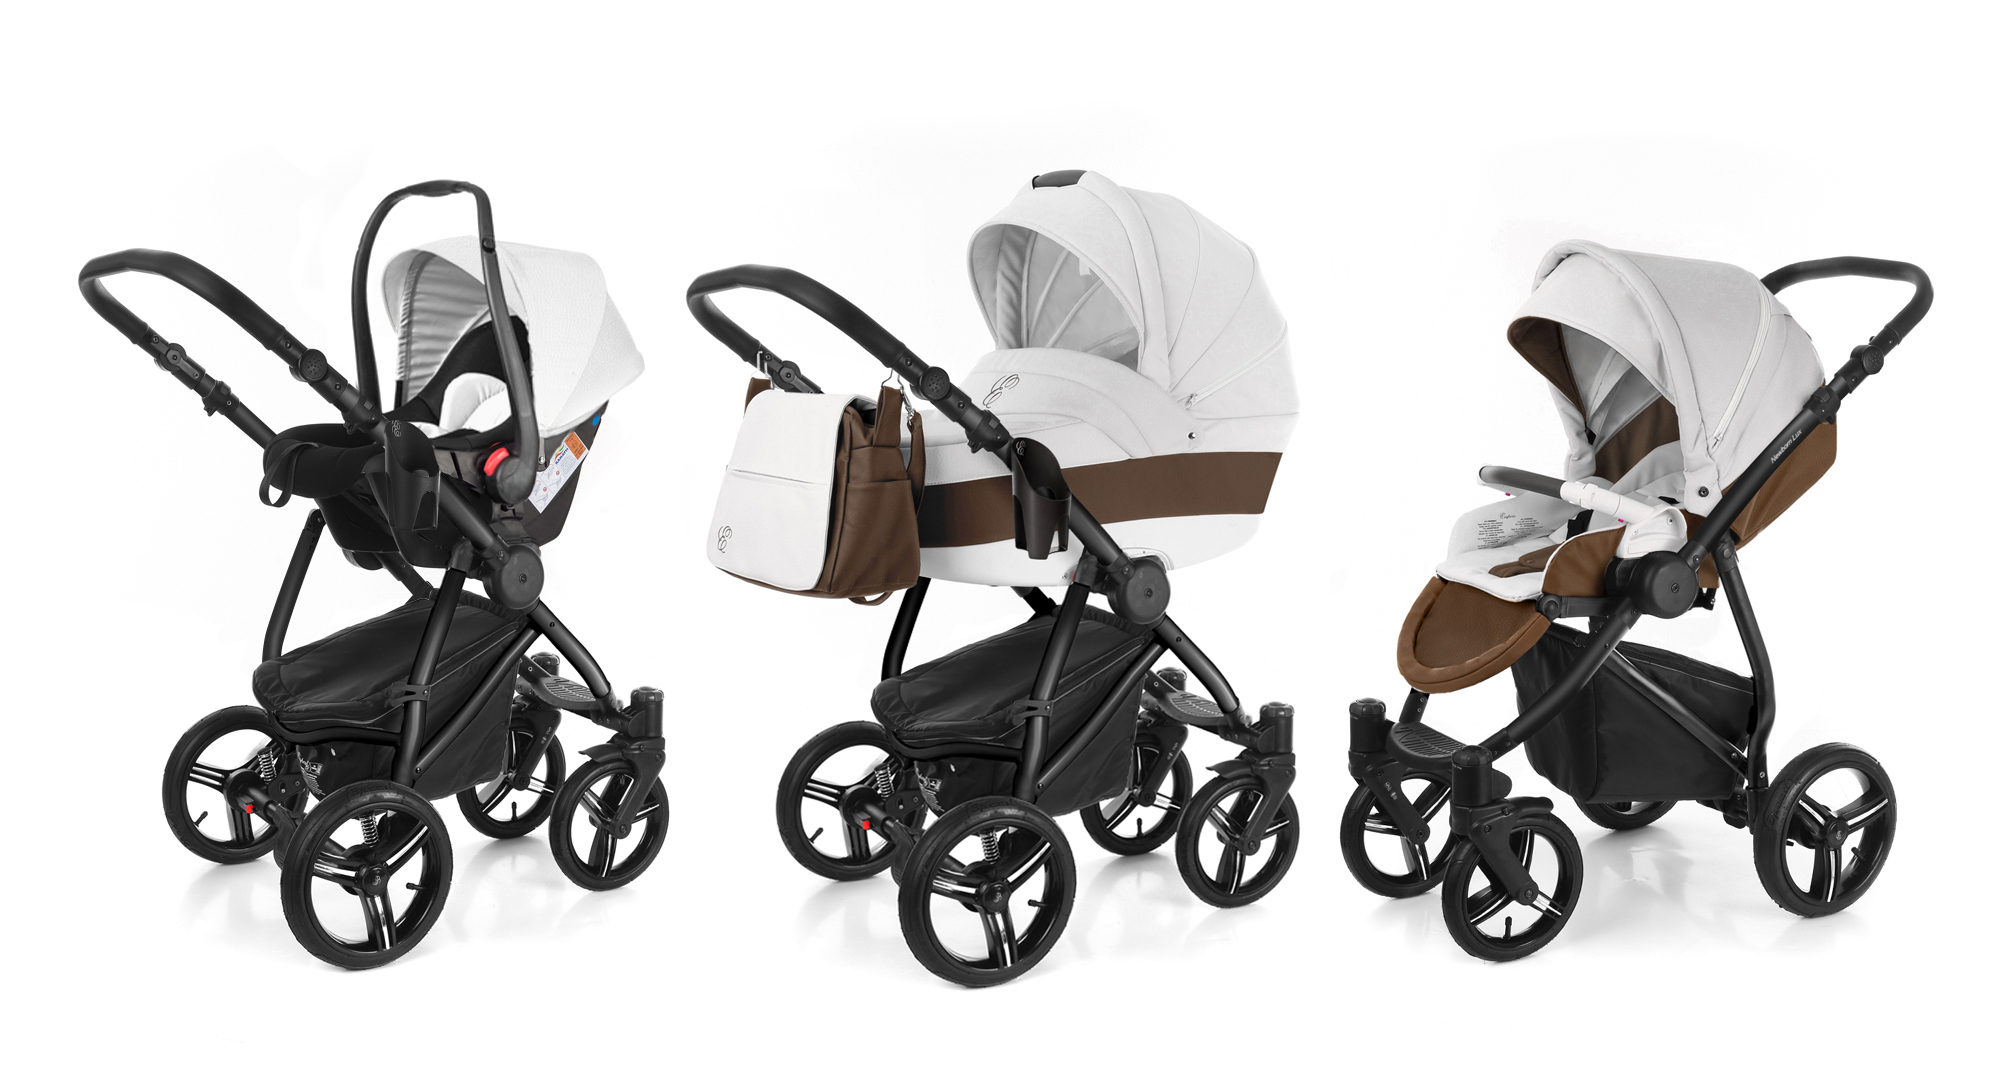 Коляска 3 в 1 Esspero Grand Newborn Lux (шасси Black). Фото N7